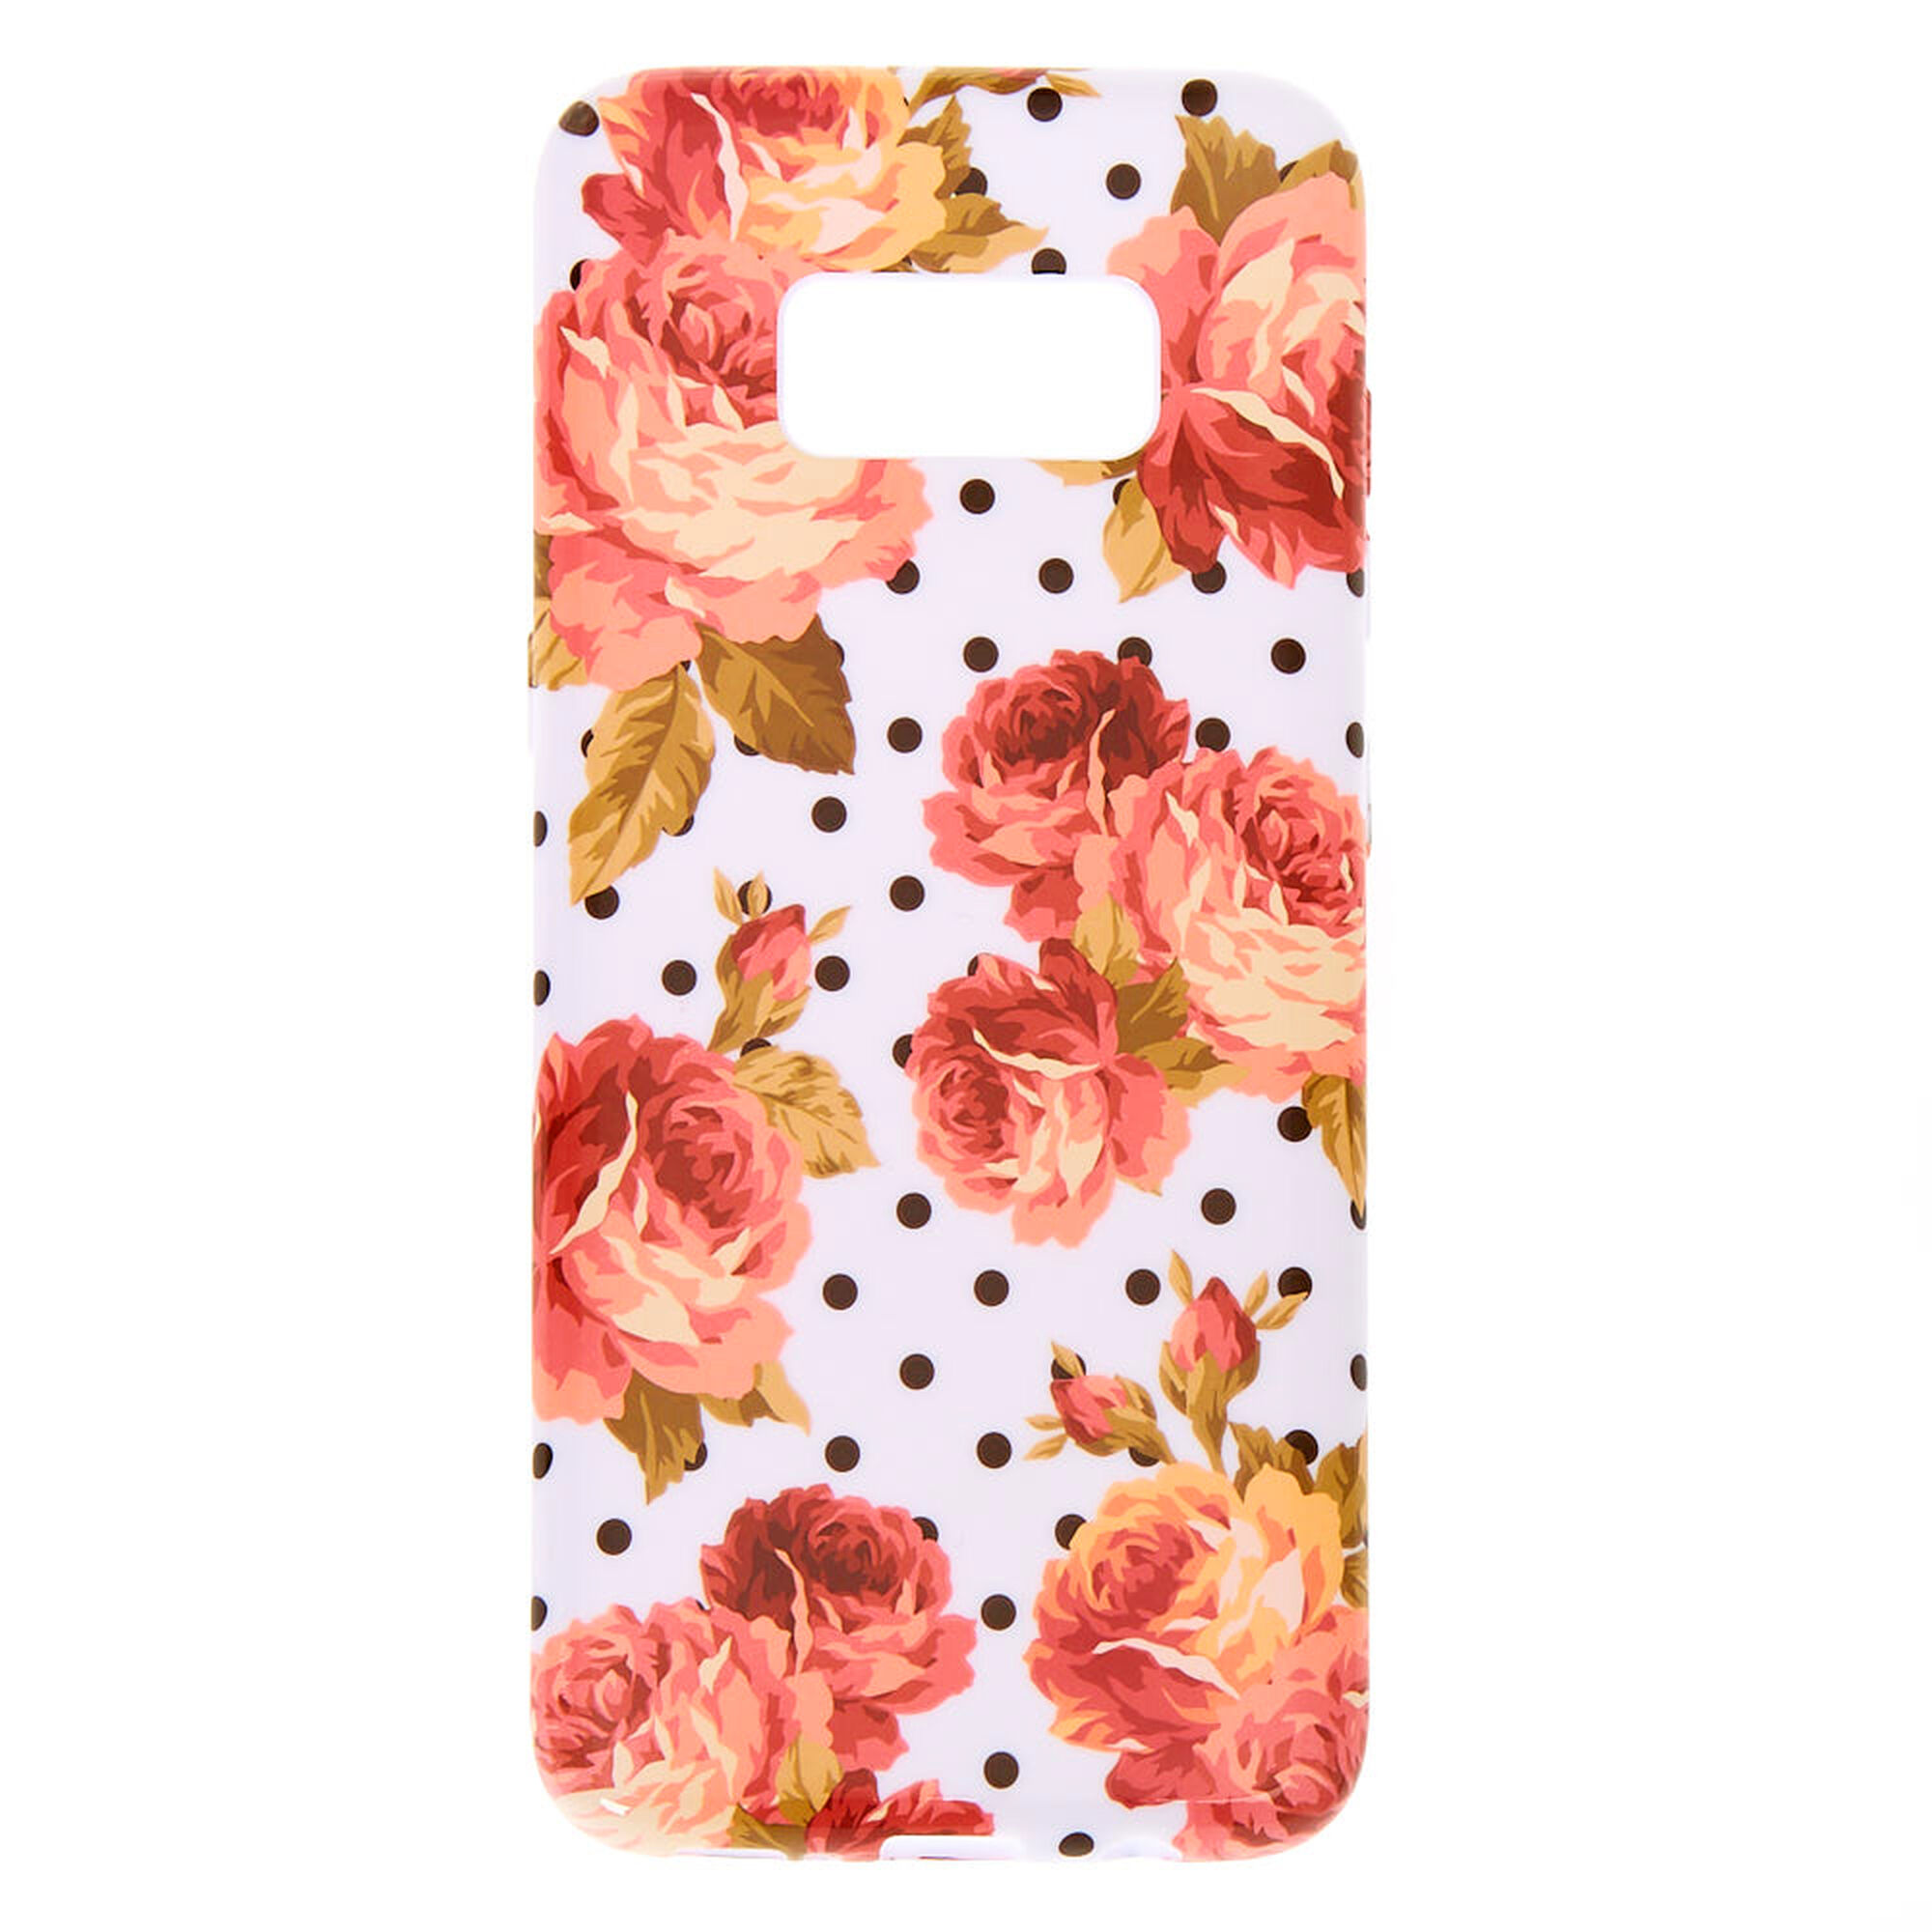 Floral Polka Dot Phone Case Fits Samsung Galaxy S8 Claire S Us